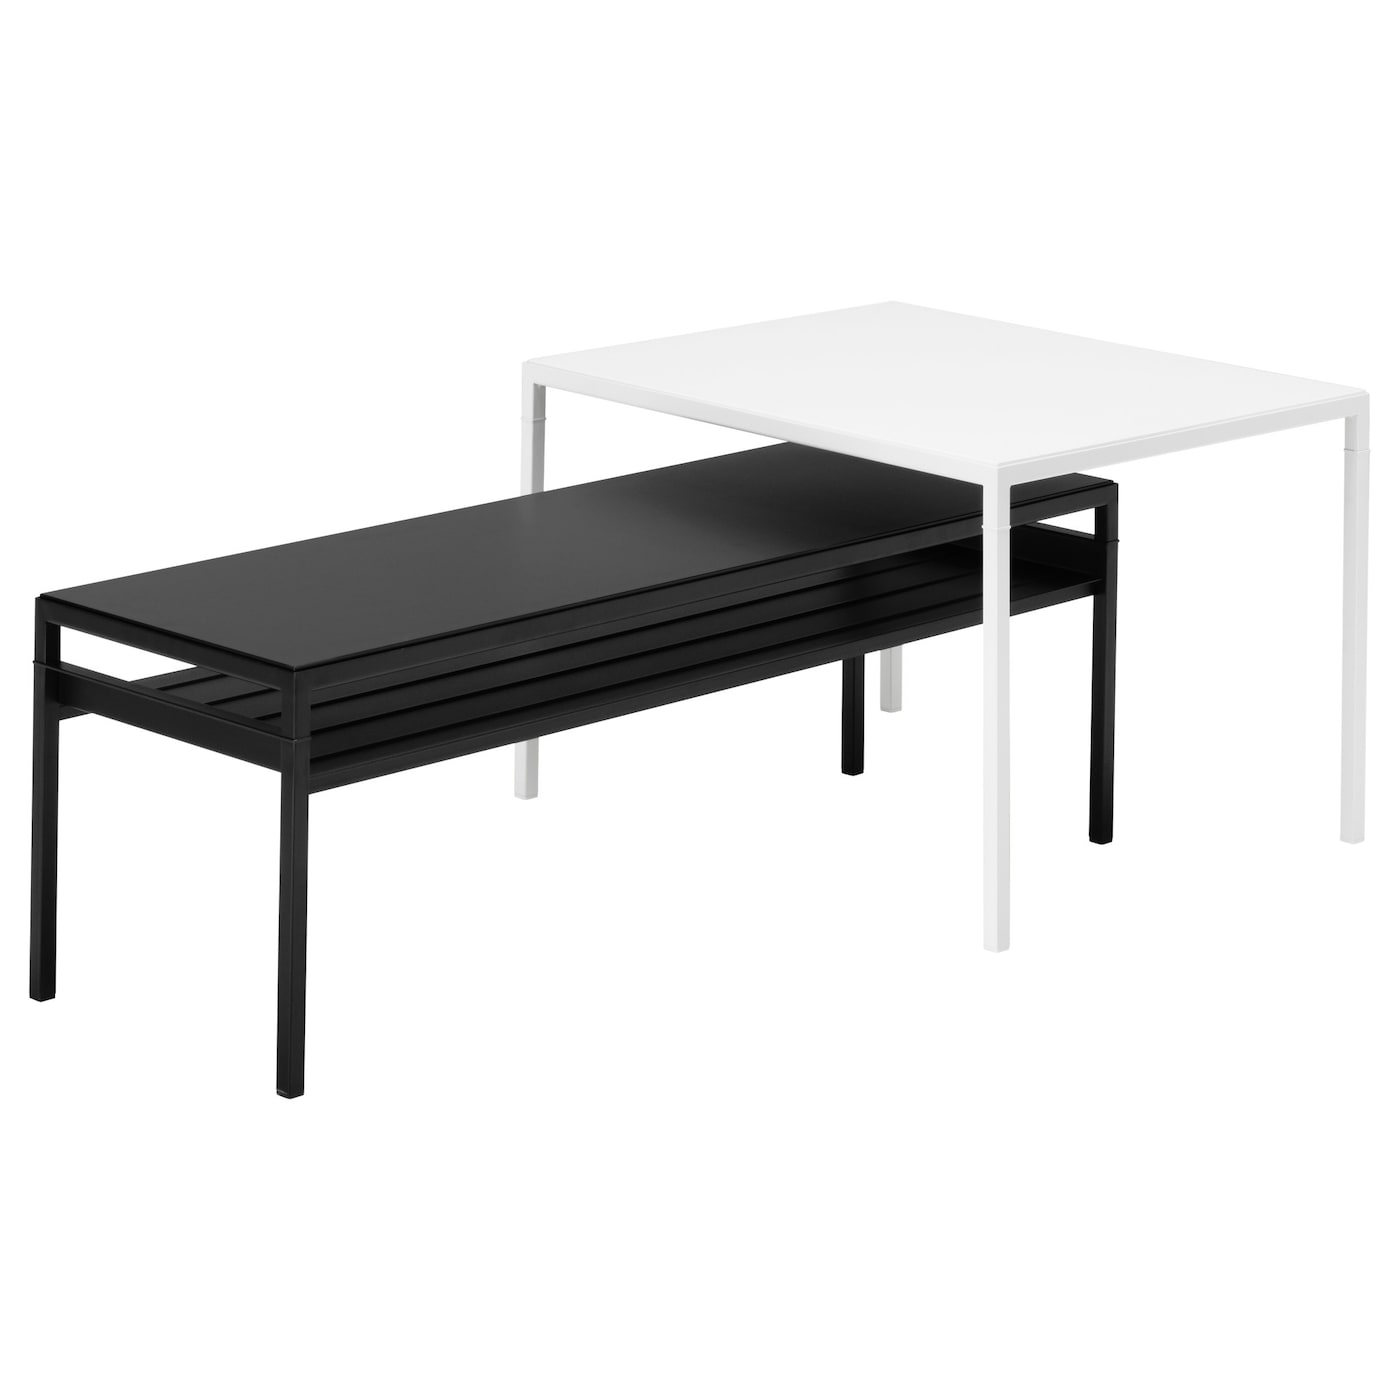 Table basse design table basse relevable ikea for Ikea besta table d appoint